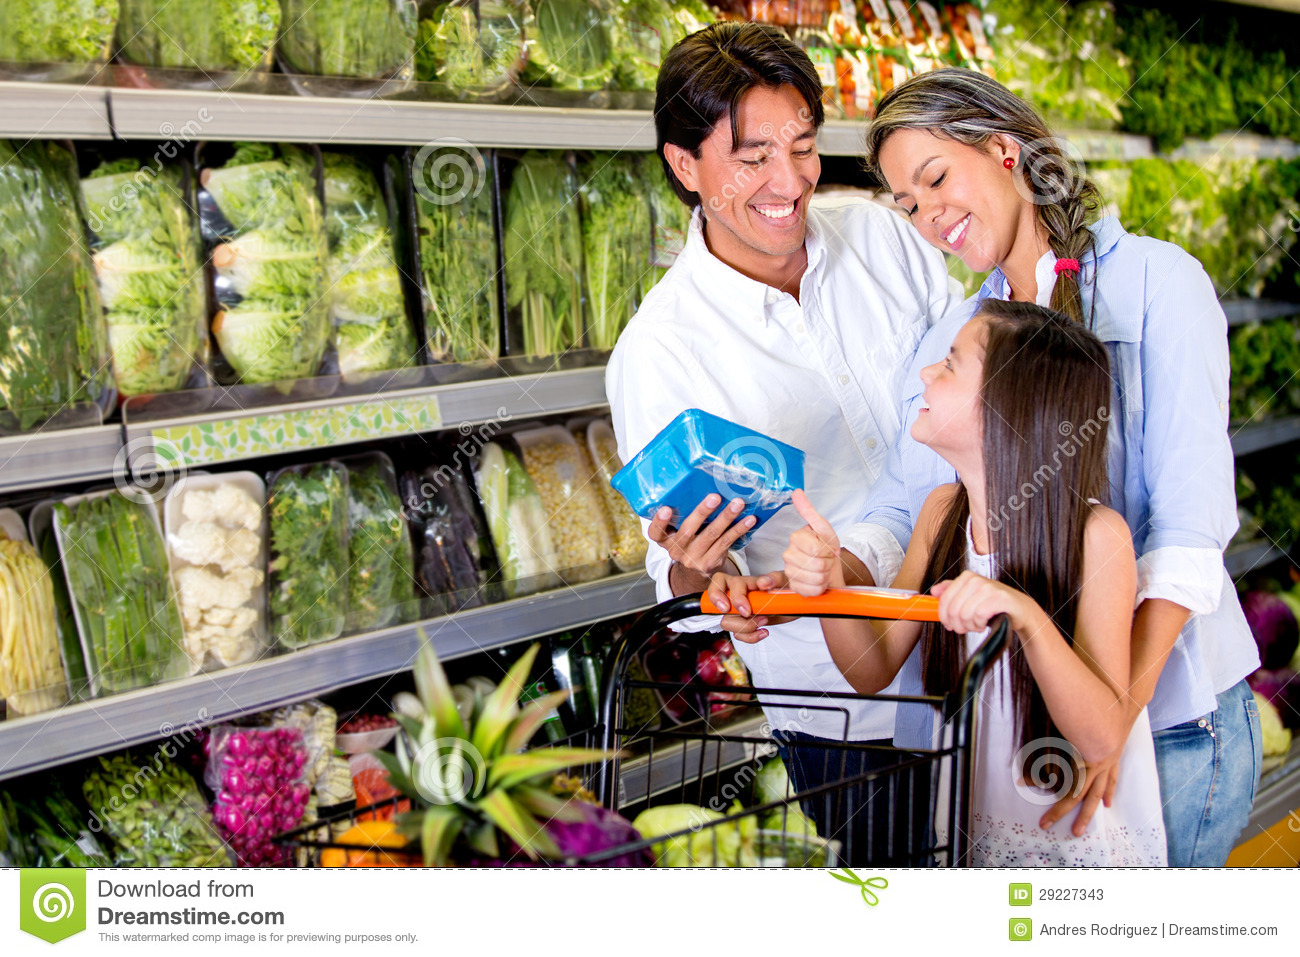 Buying food for the family essay